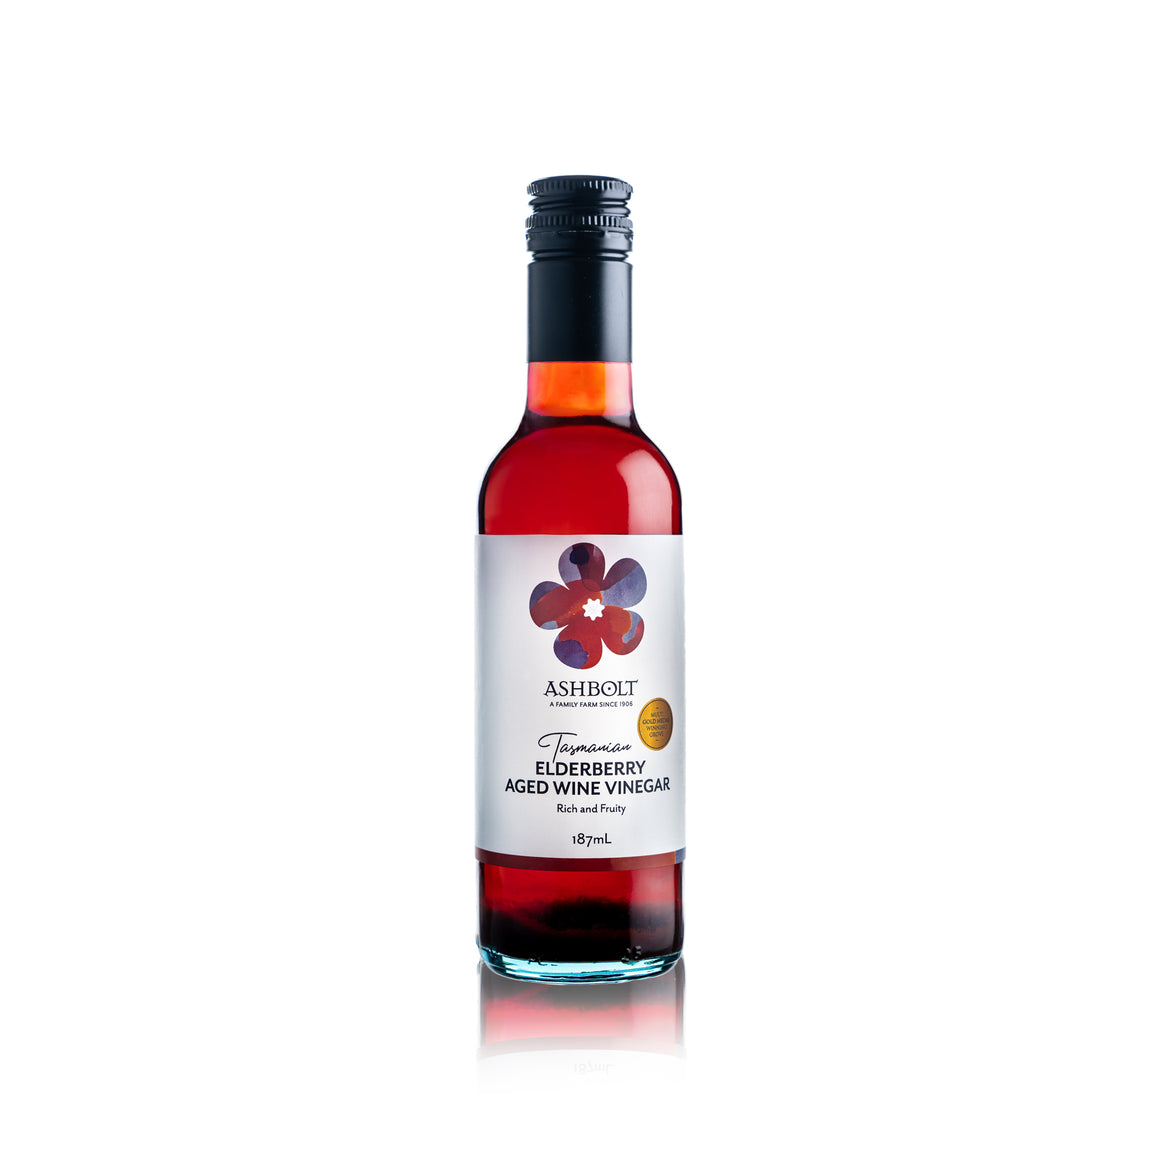 Elderberry Aged Wine Vinegar in a 187ml bottle